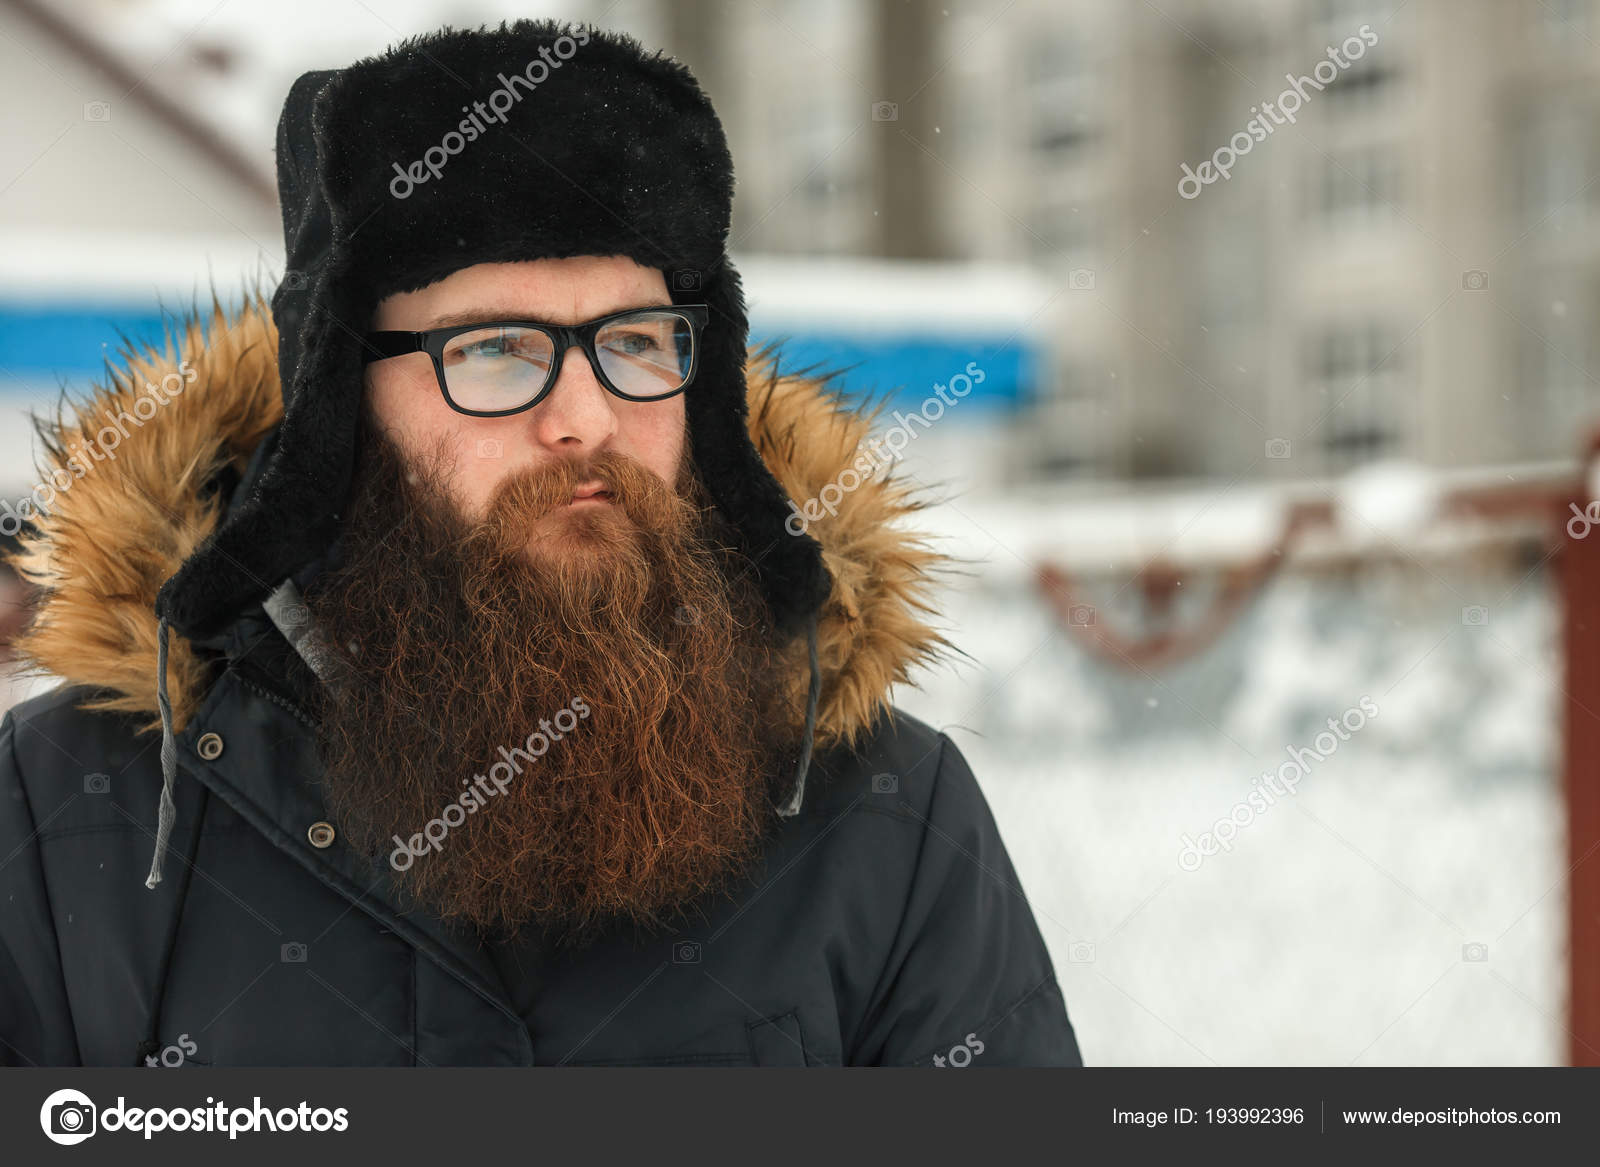 eab366bdbe5 Bearded man in real life. Portrait of young guy with large beard in glasses  and a black cap in the winter.– stock image